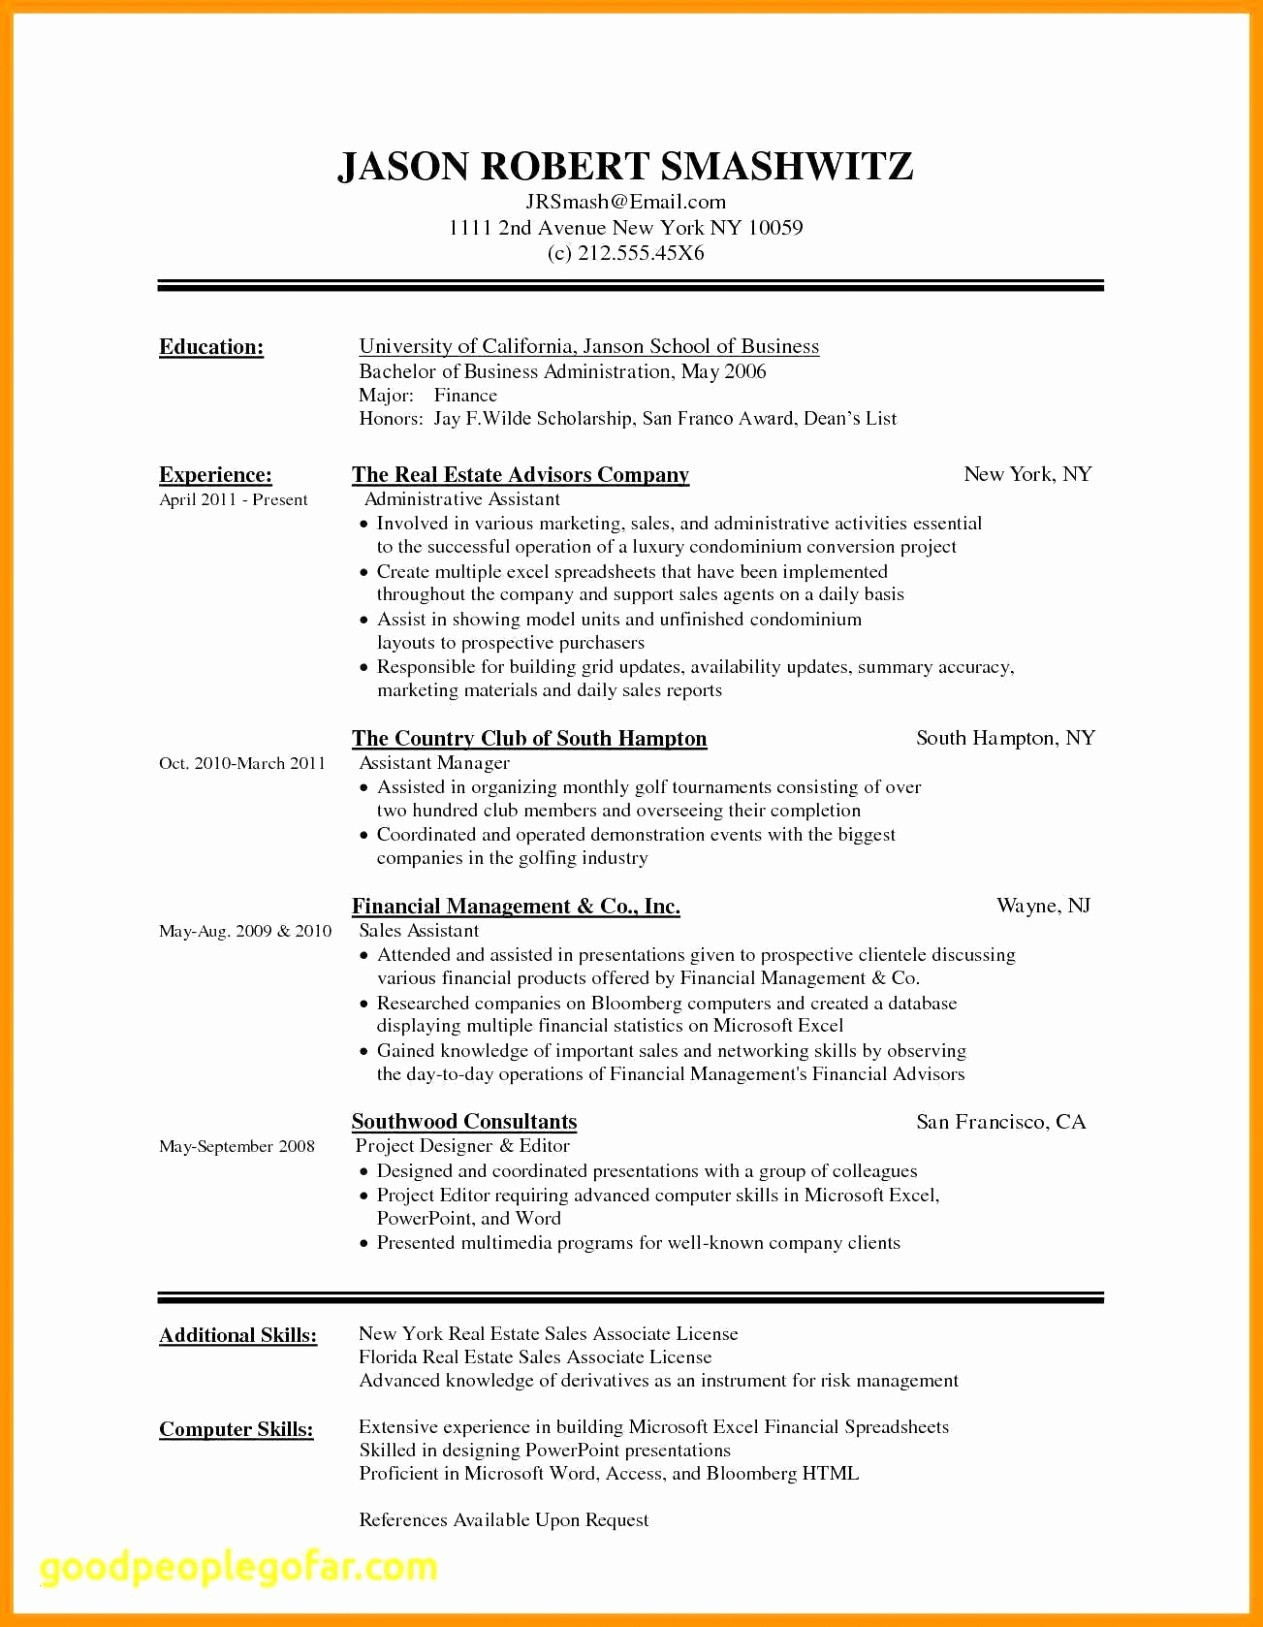 Resume Cover Letter Word Template Elegant Free Cover Letter Template Microsoft Word Samples